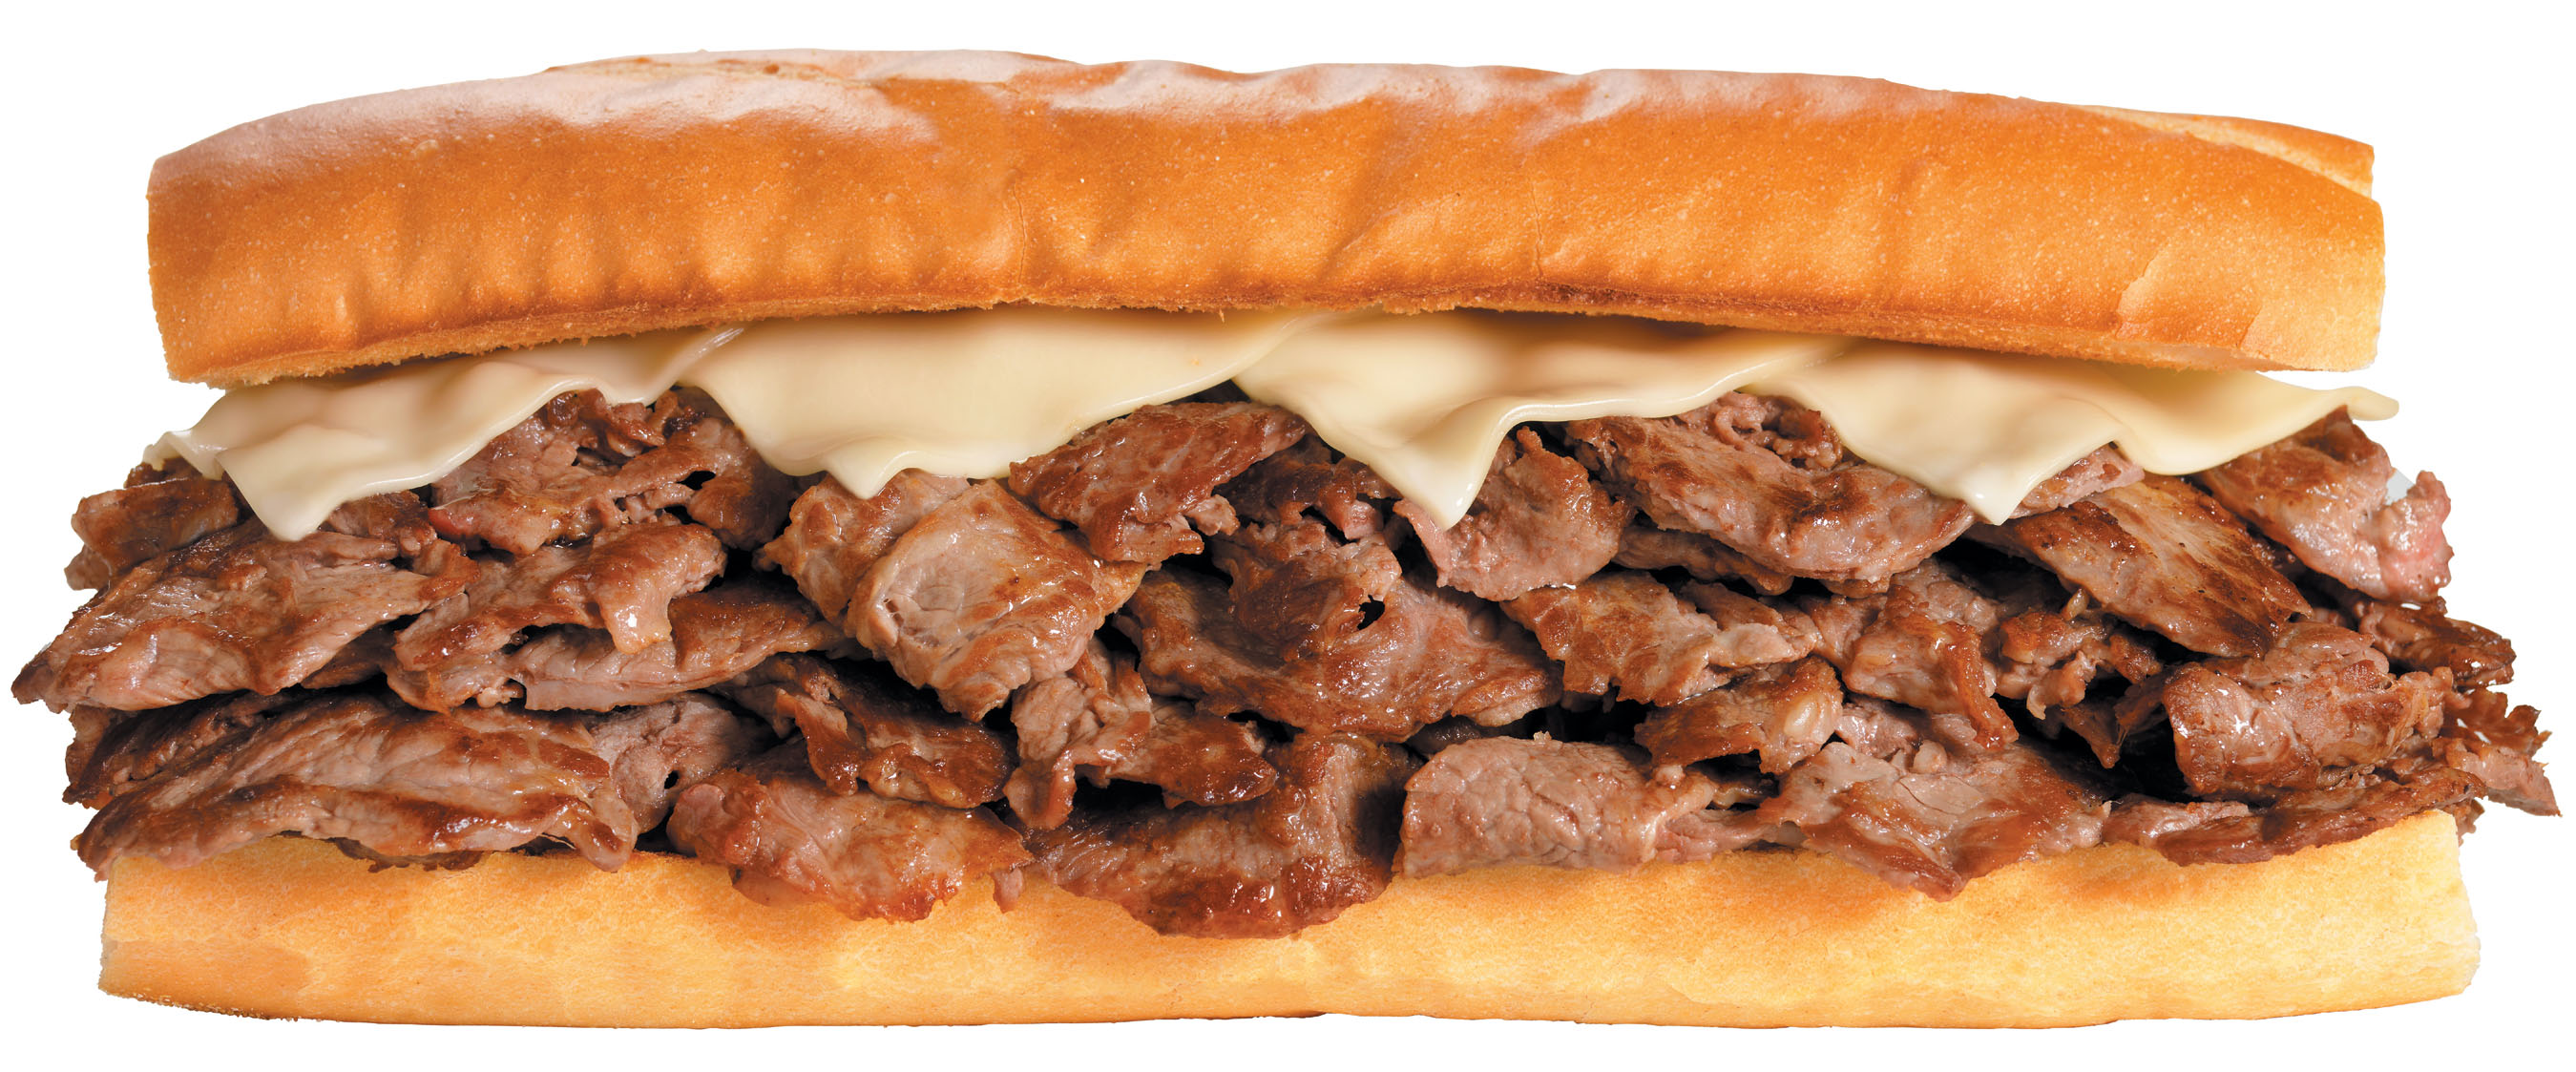 Steak Sandwich Related Keywords & Suggestions - Steak Sandwich Long ...